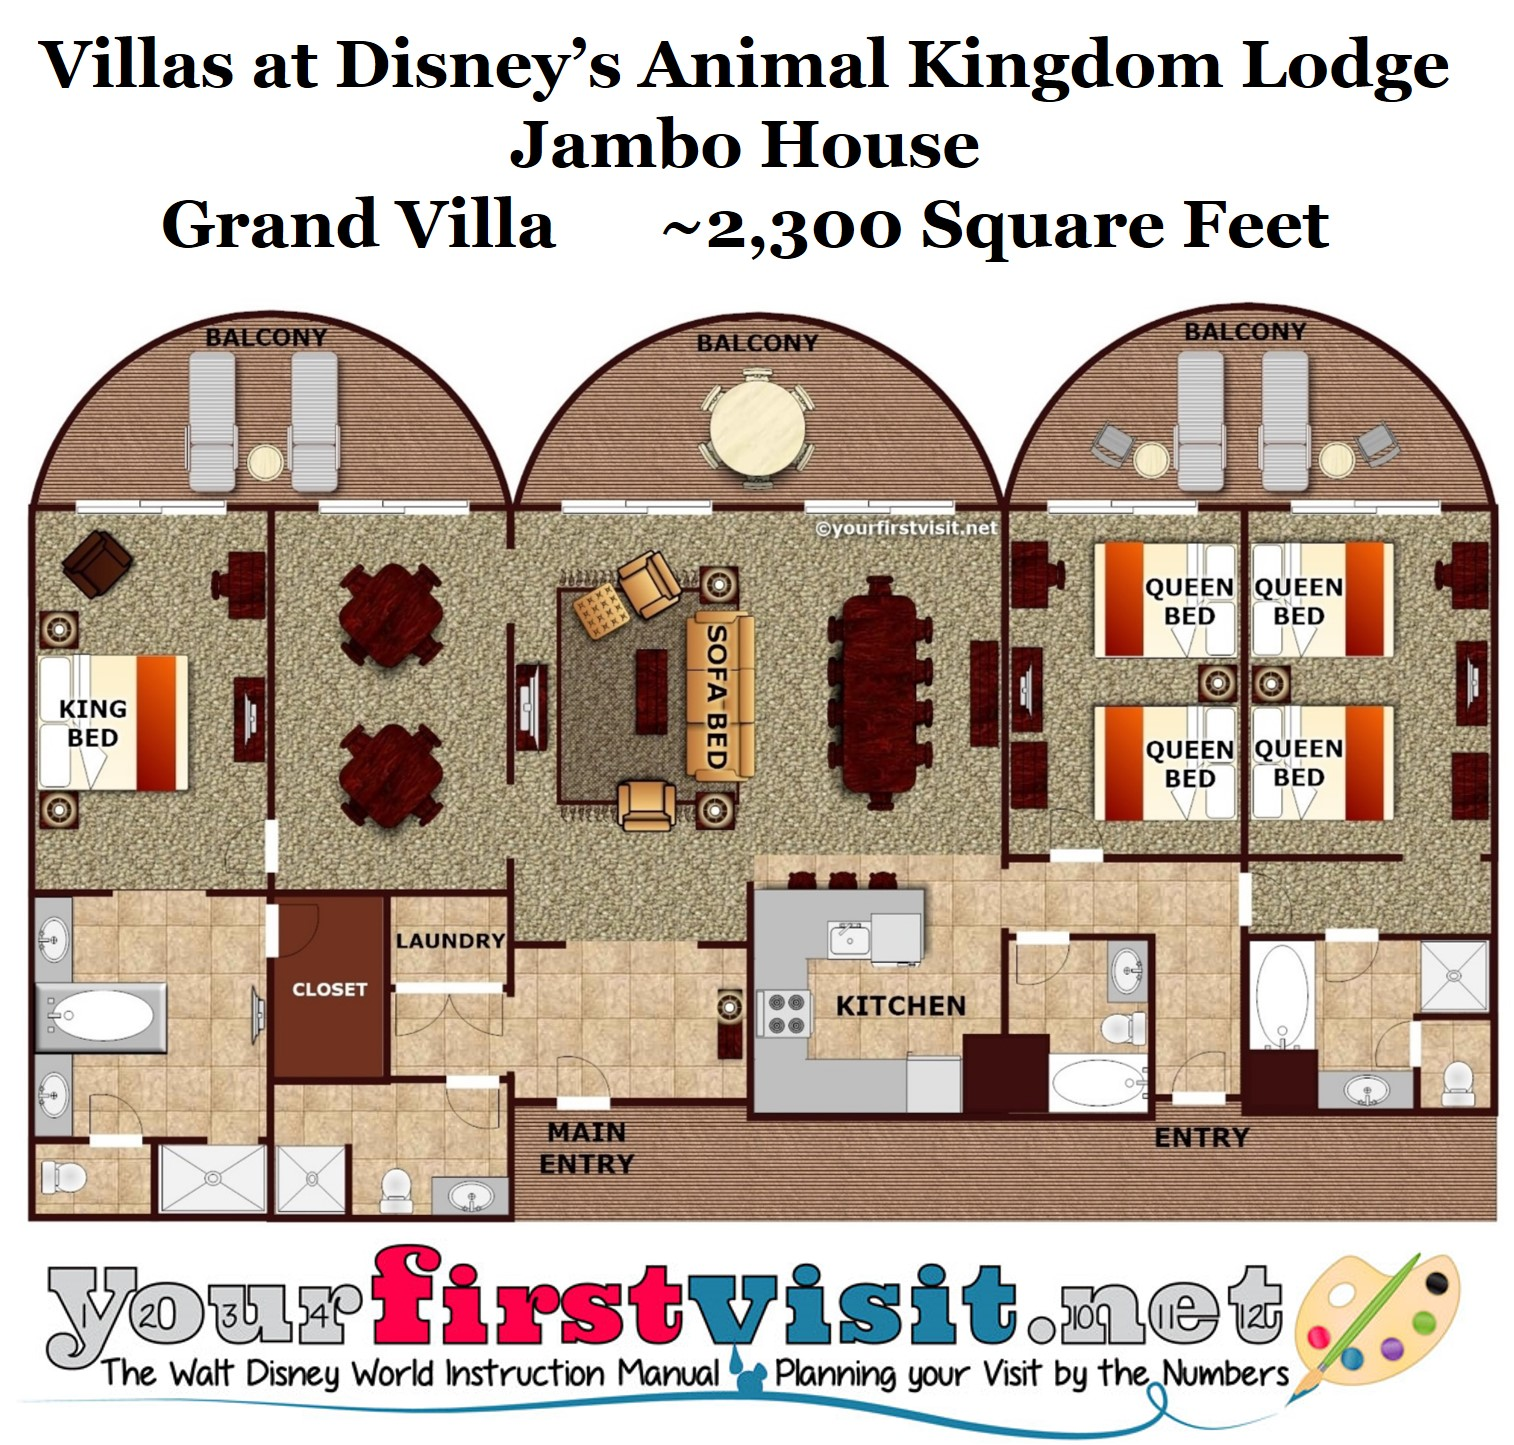 Floor Plan Grand Villa Animal Kingdom Lodge Jambo House from yourfirstvisit.net